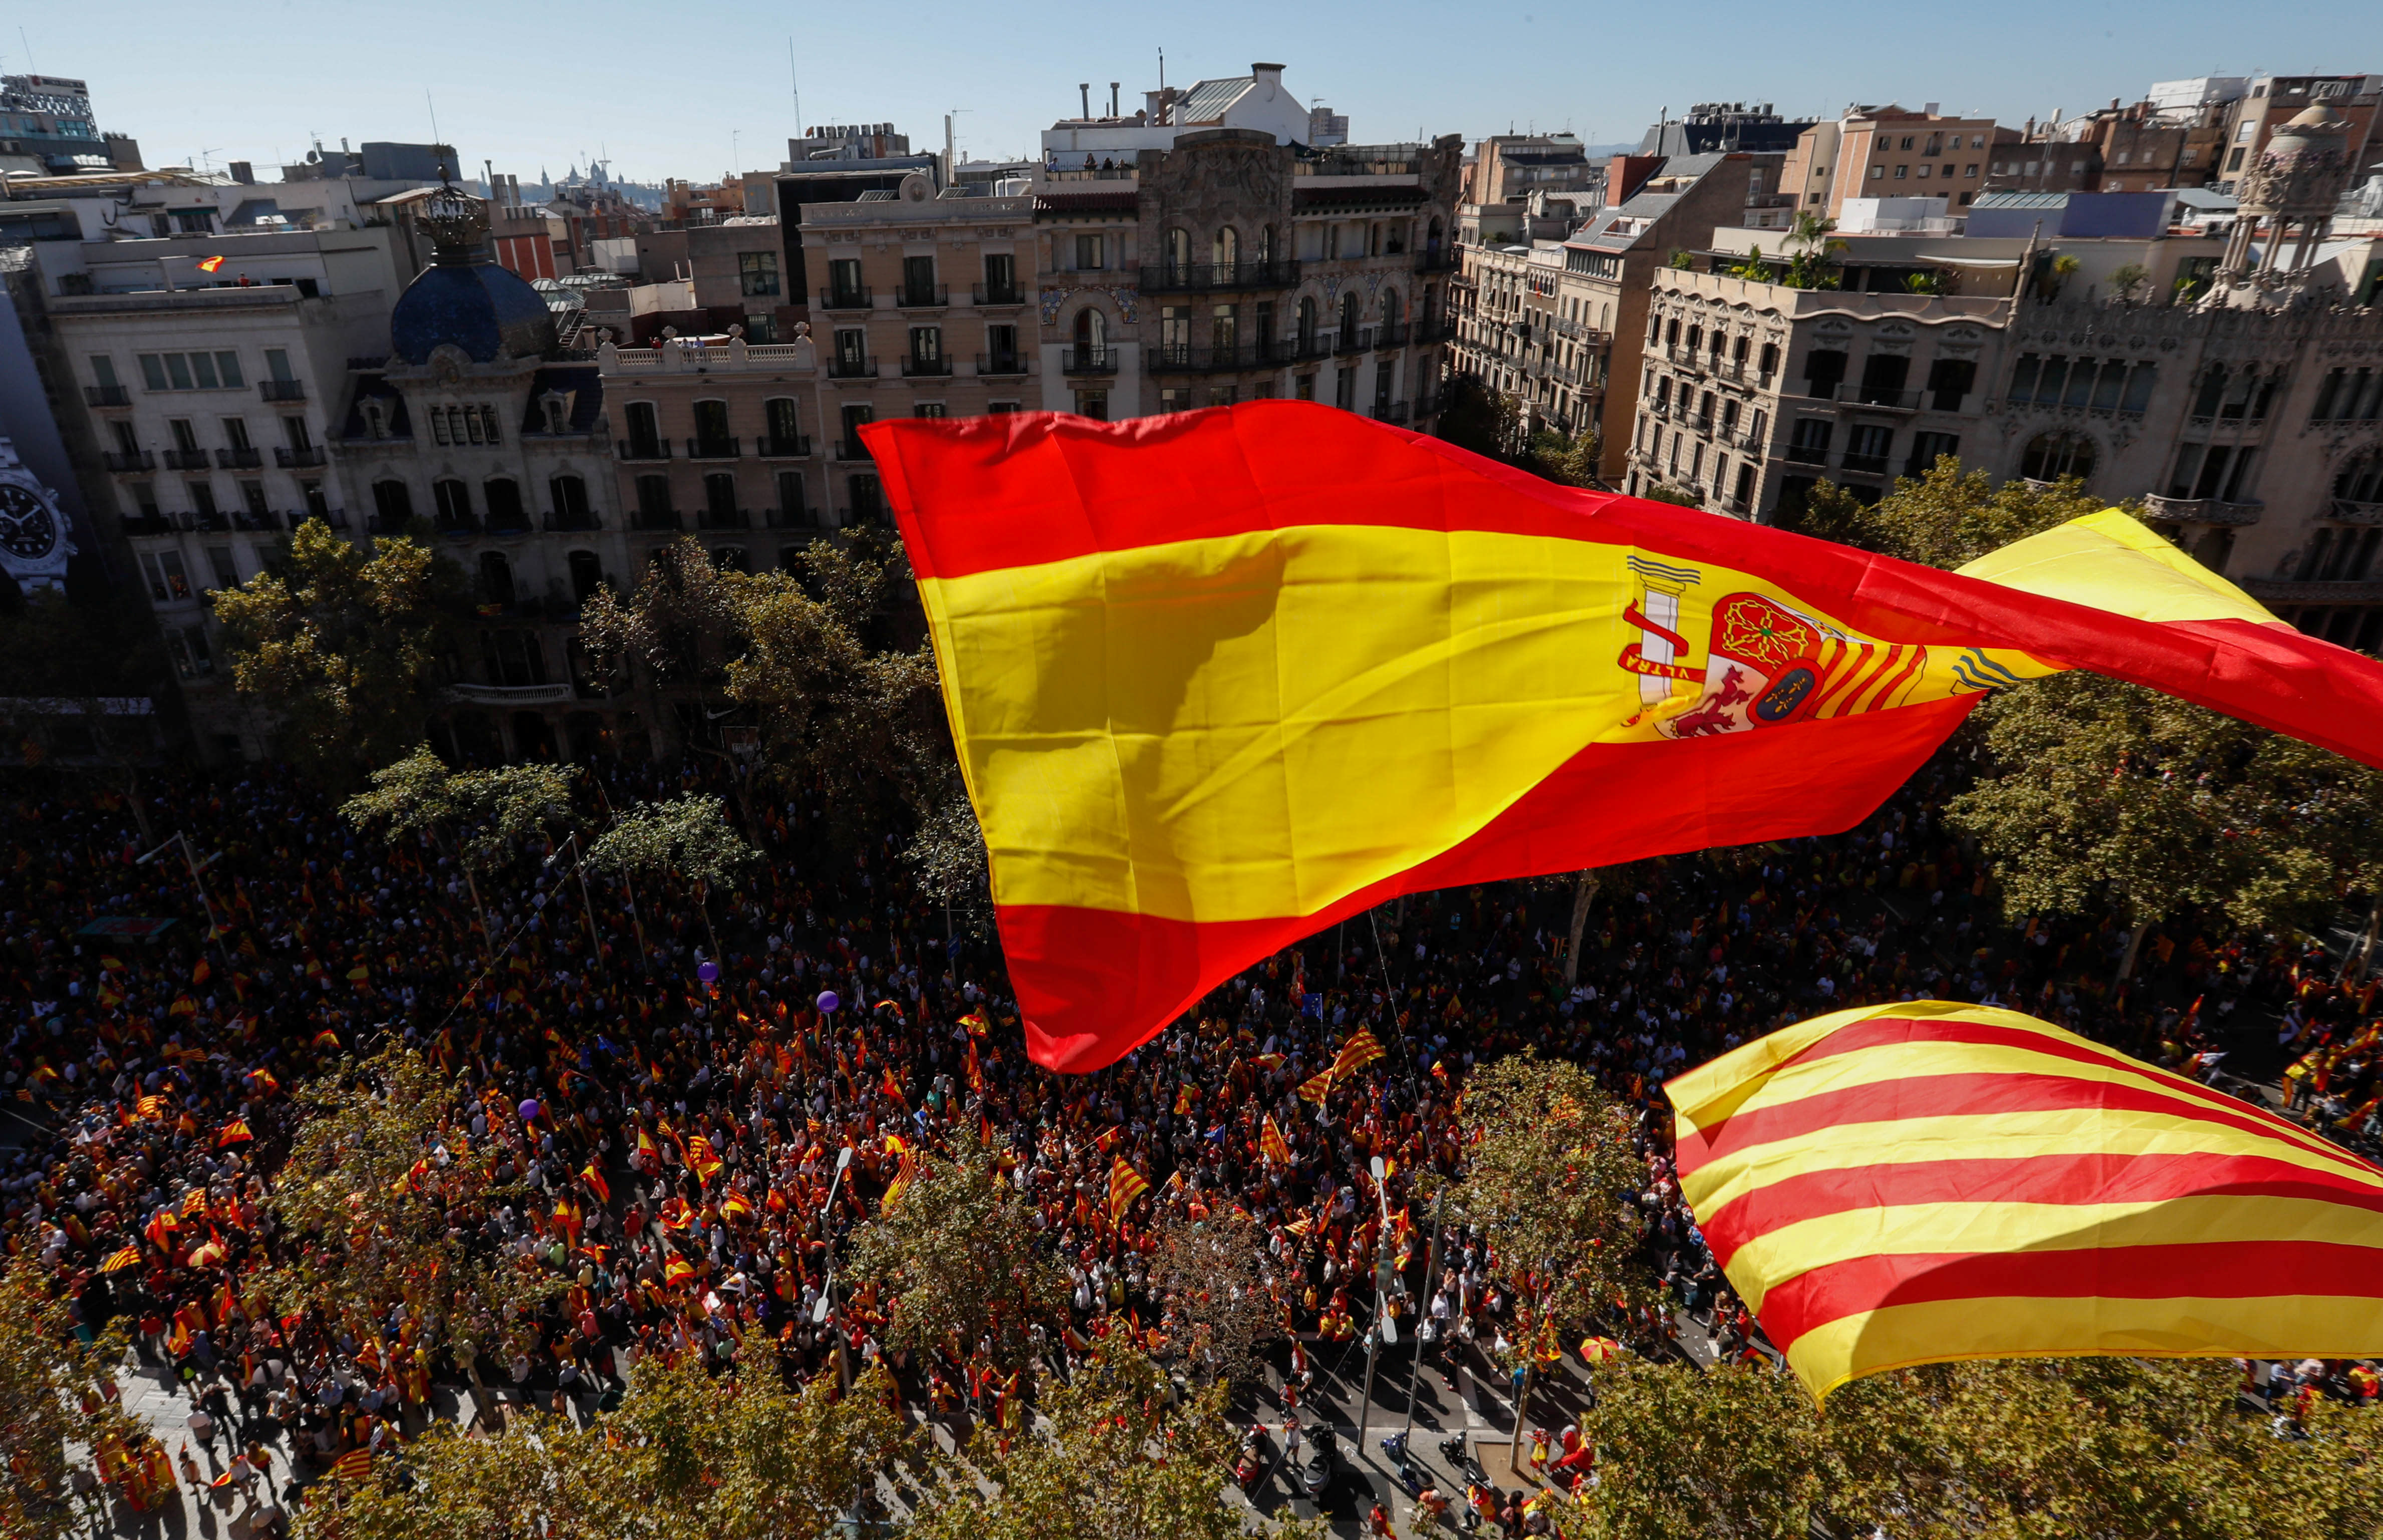 Pro-unity supporters take part in a demonstration in central Barcelona, Spain (Yves Herman / Reuters)